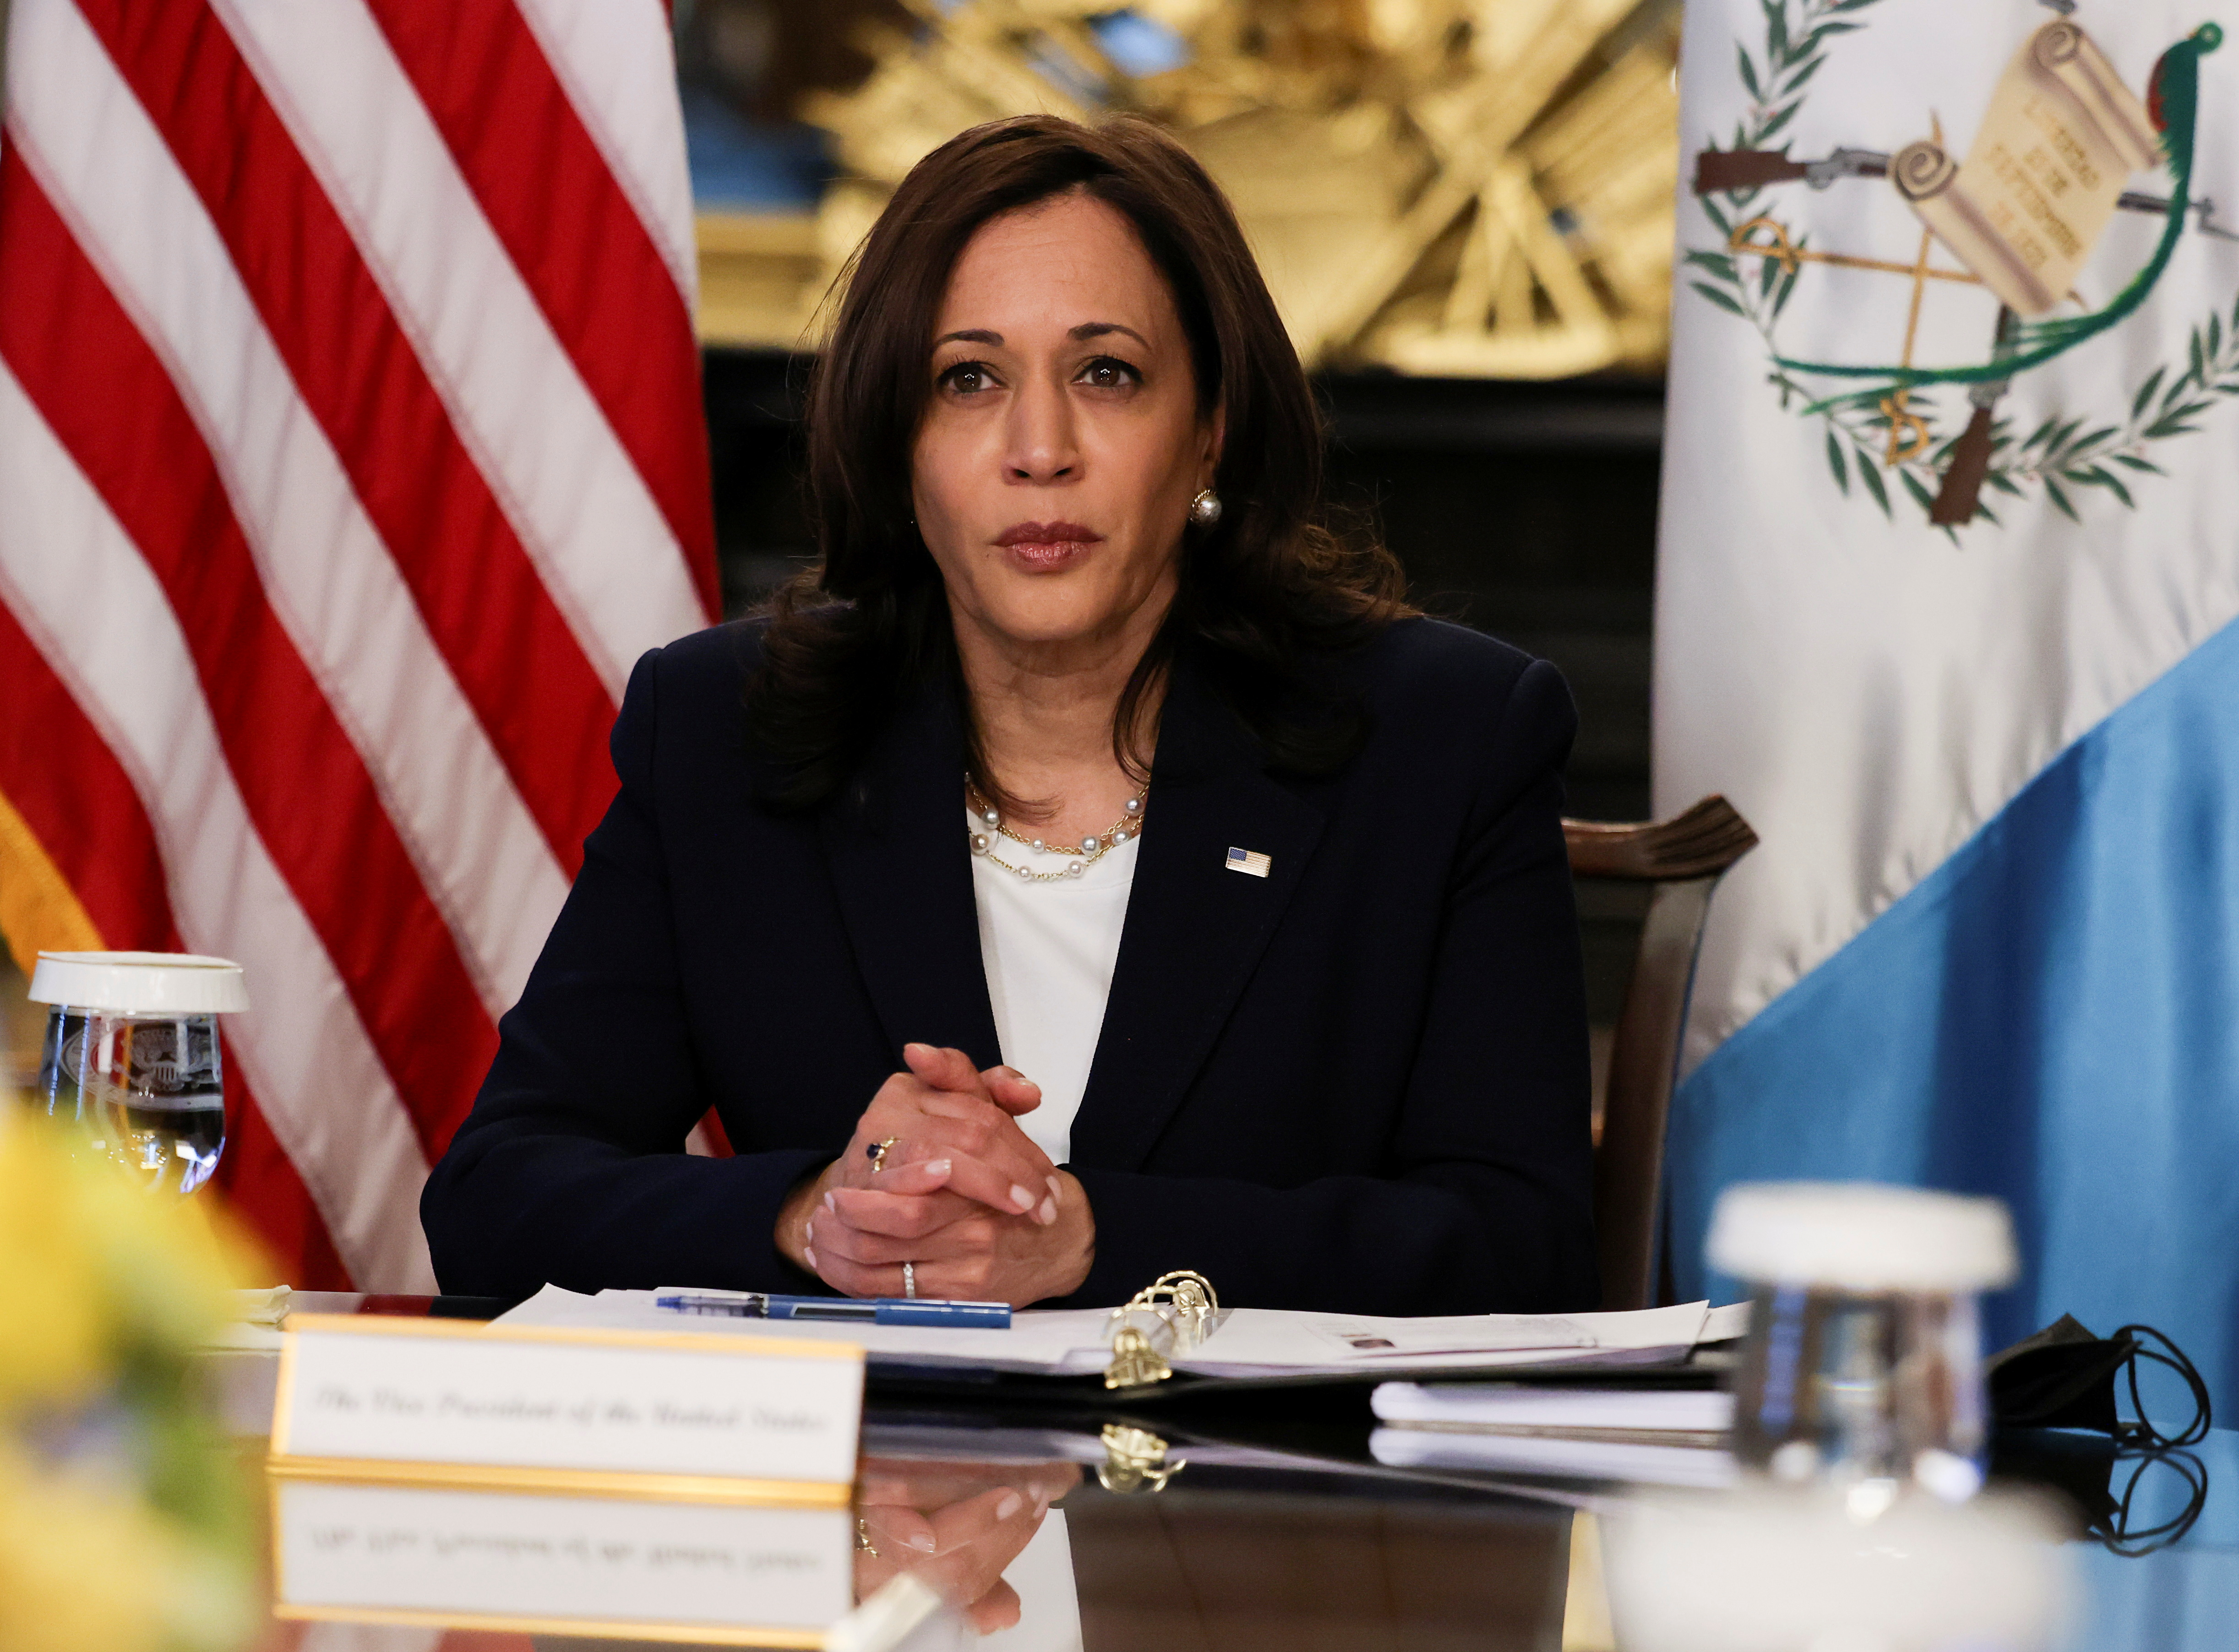 U.S. Vice President Kamala Harris holds a videoconference with Guatemala's President Alejandro Giammattei to discuss solutions to an increase in migration as she looks for ways to defuse a migrant crisis at the U.S. border with Mexico, in the Eisenhower Executive Office Building at the White House in Washington, U.S., April 26, 2021. REUTERS/Evelyn Hockstein